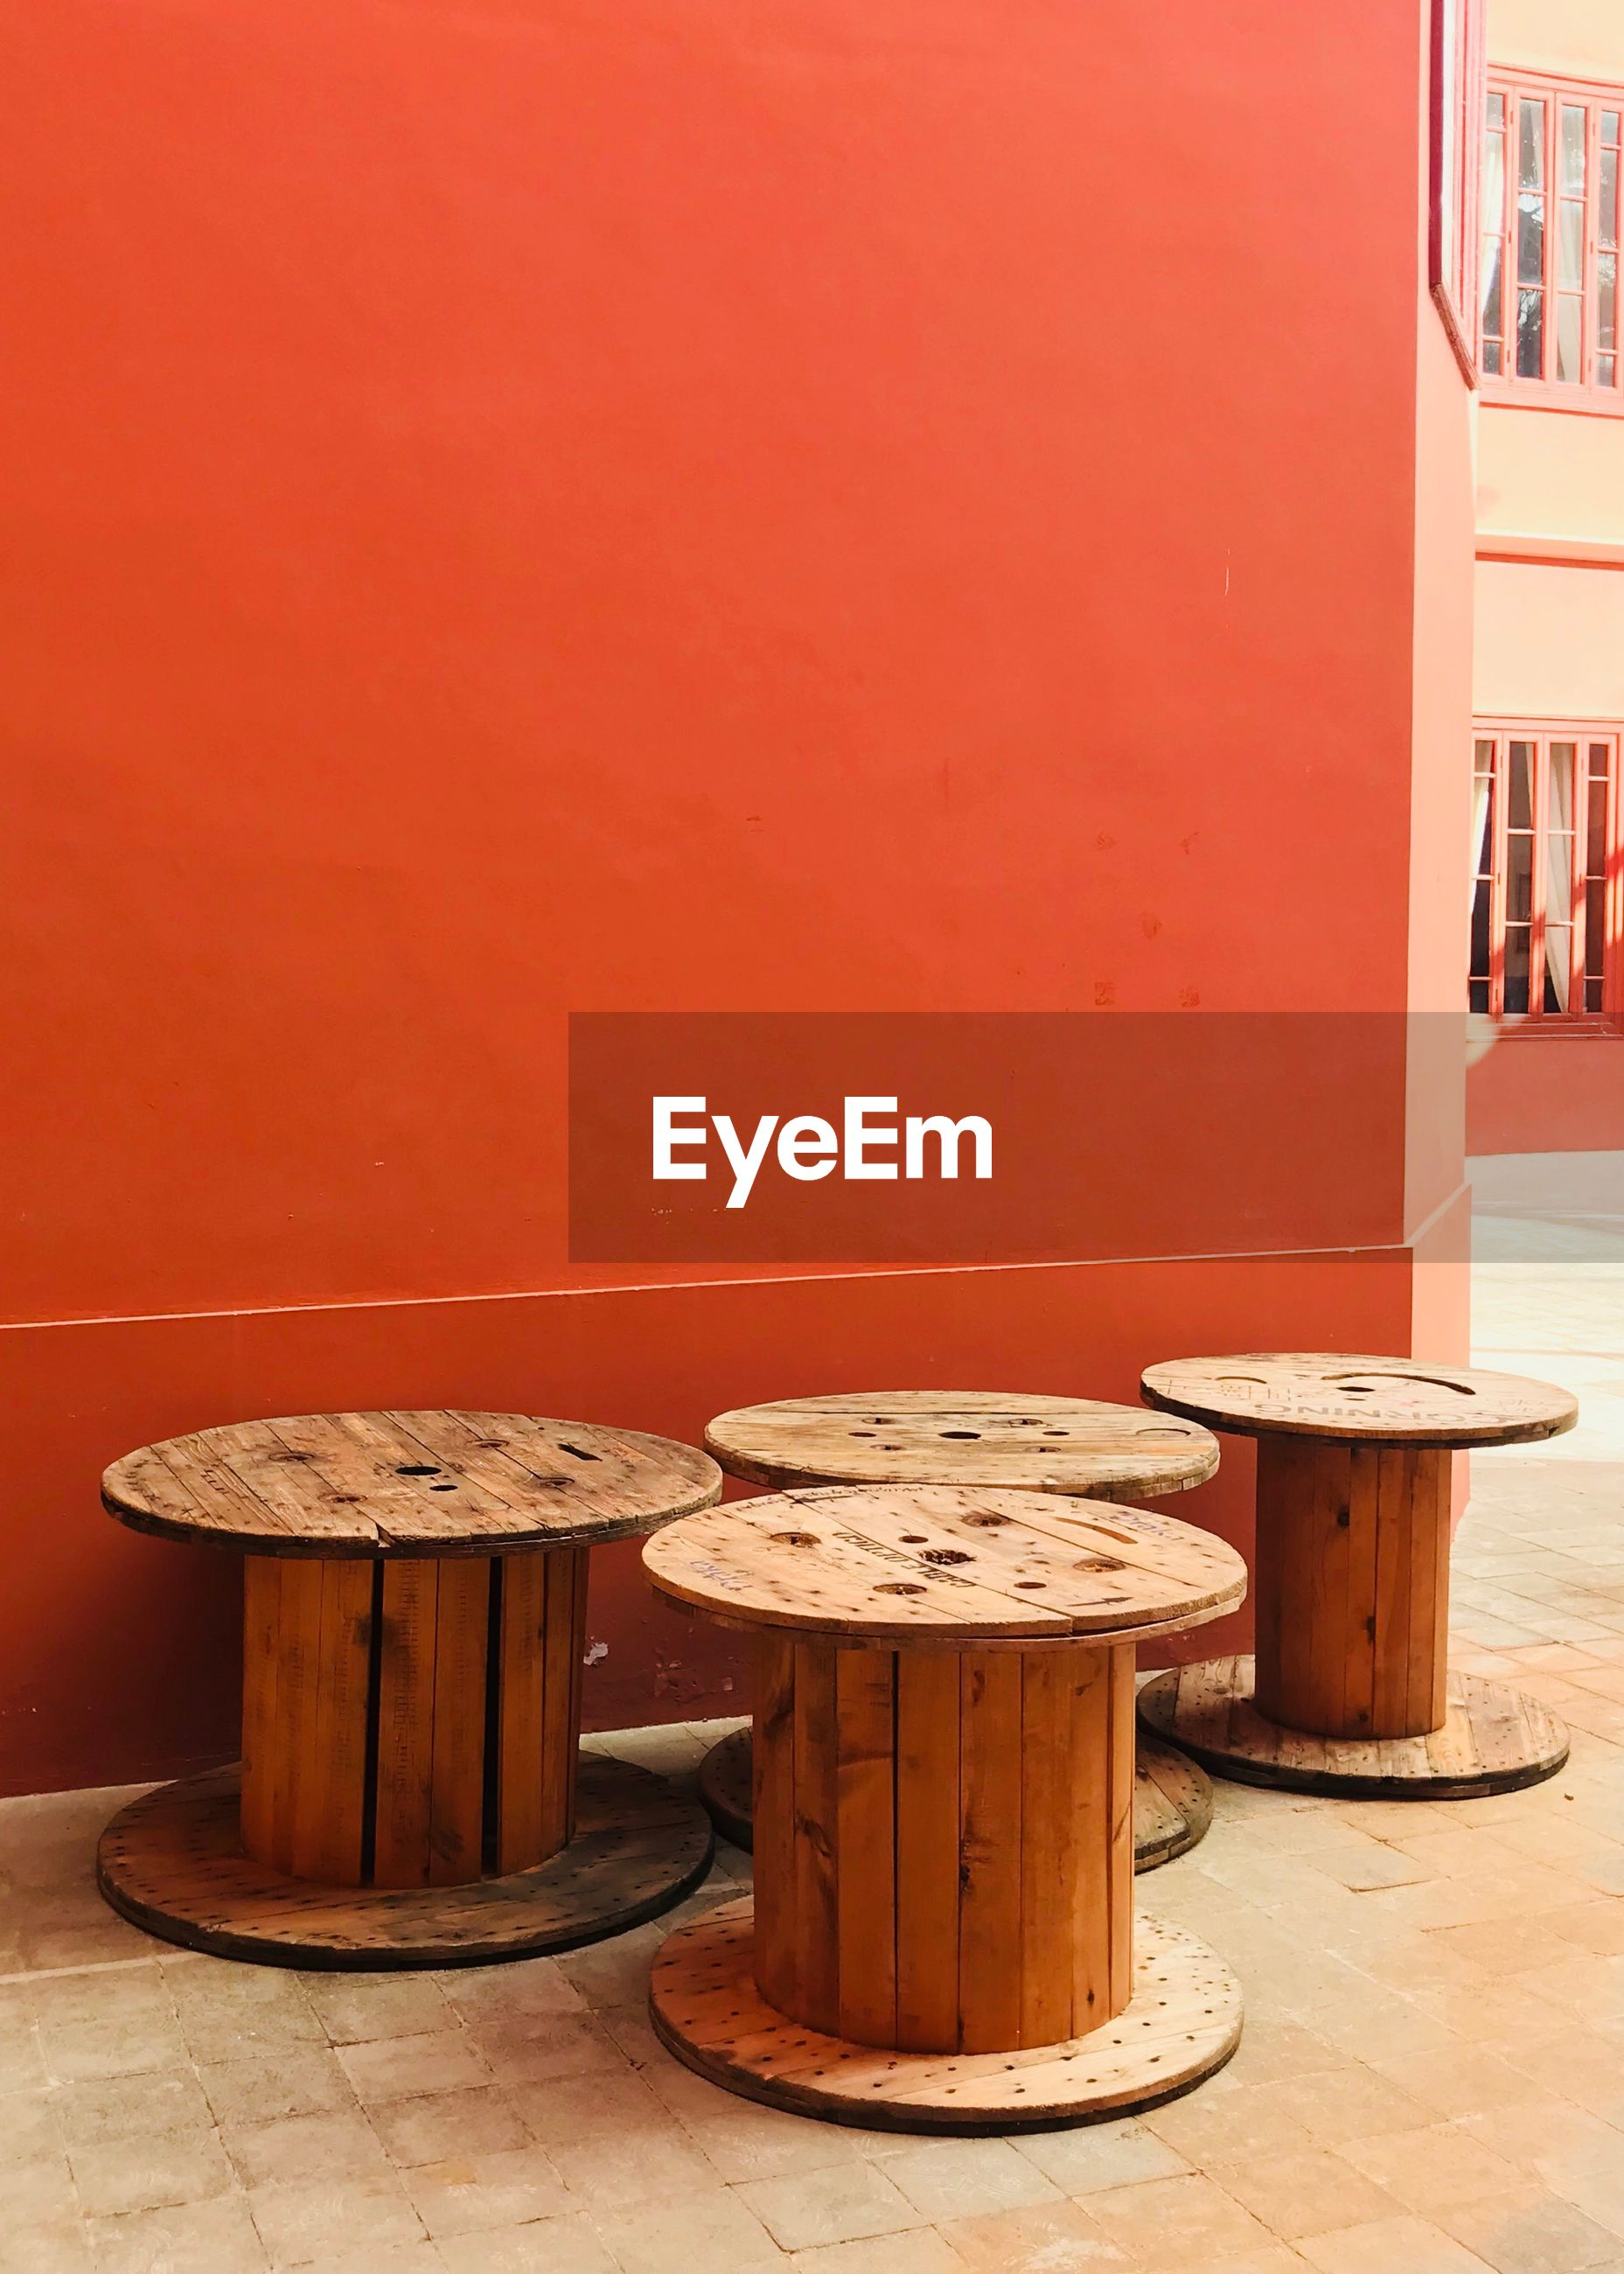 Wooden stools by wall